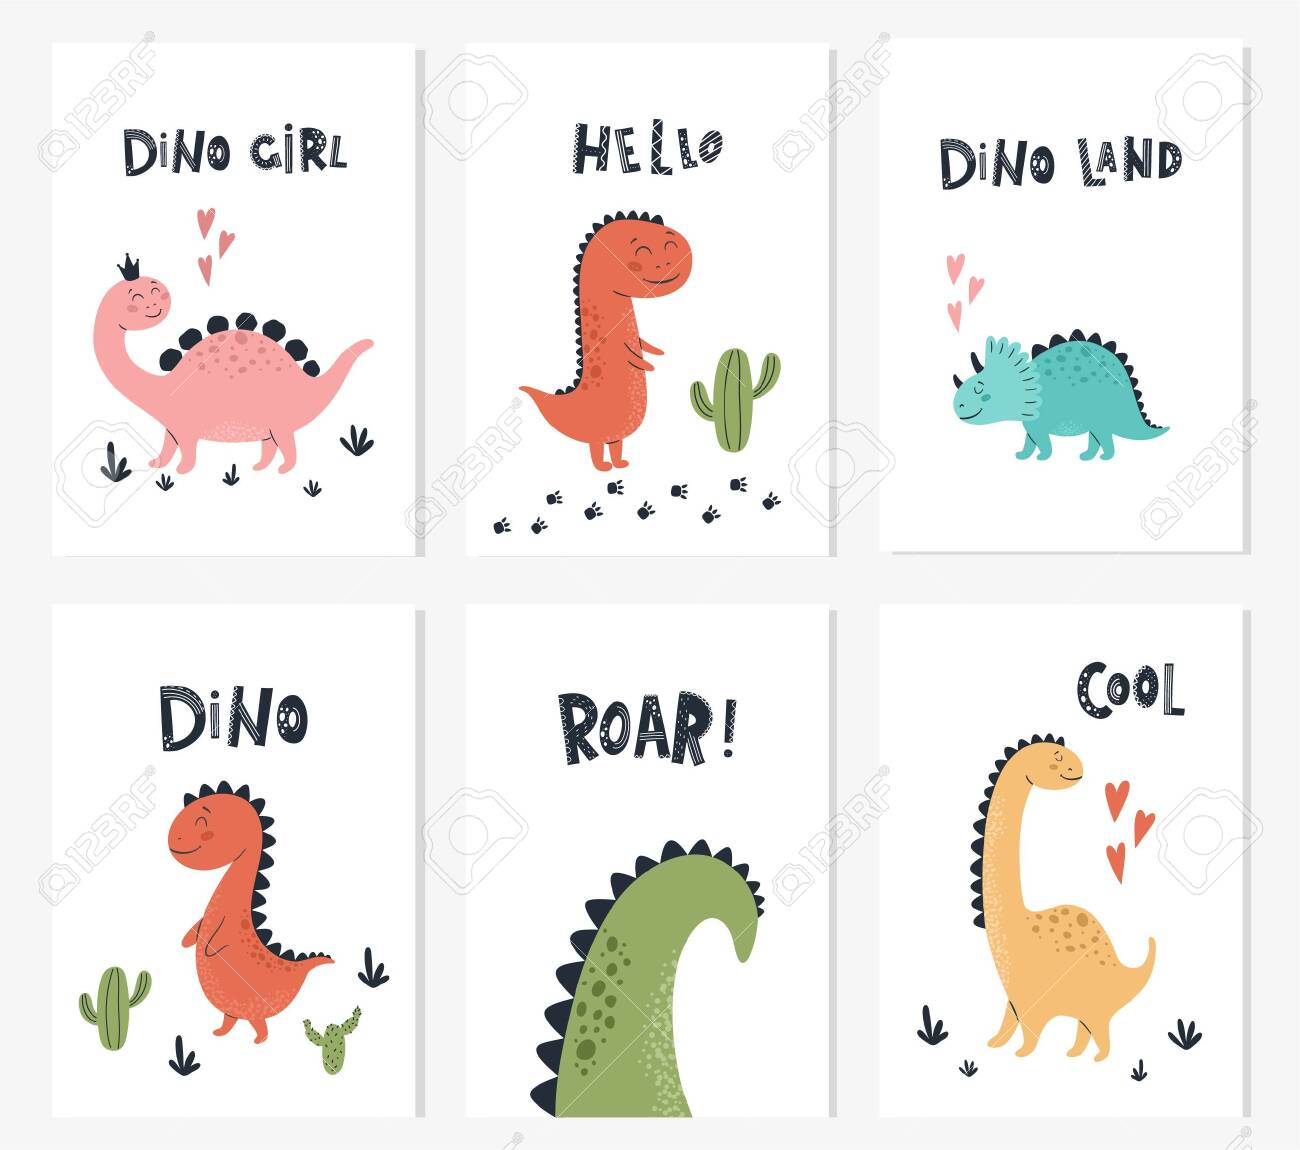 baby print with dino and phrase dino girl roar hello set of